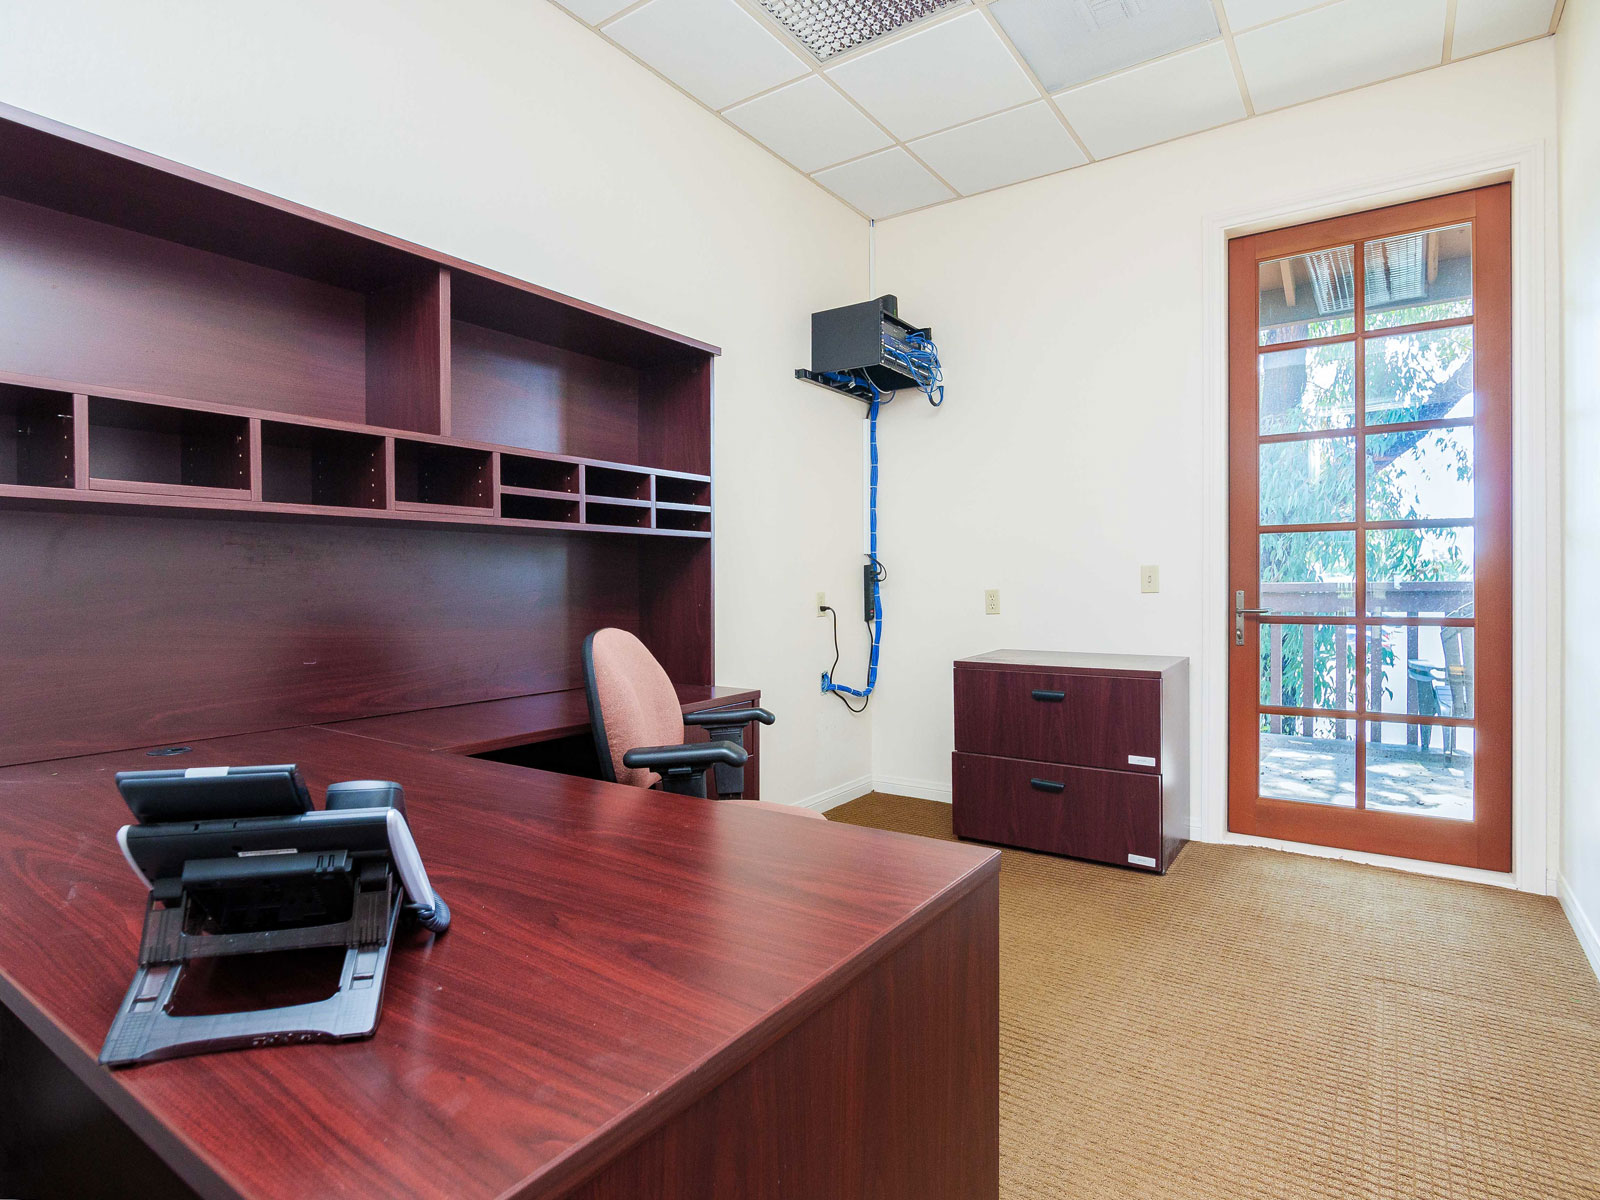 316-s-melrose-executive-office-for-lease-204-1